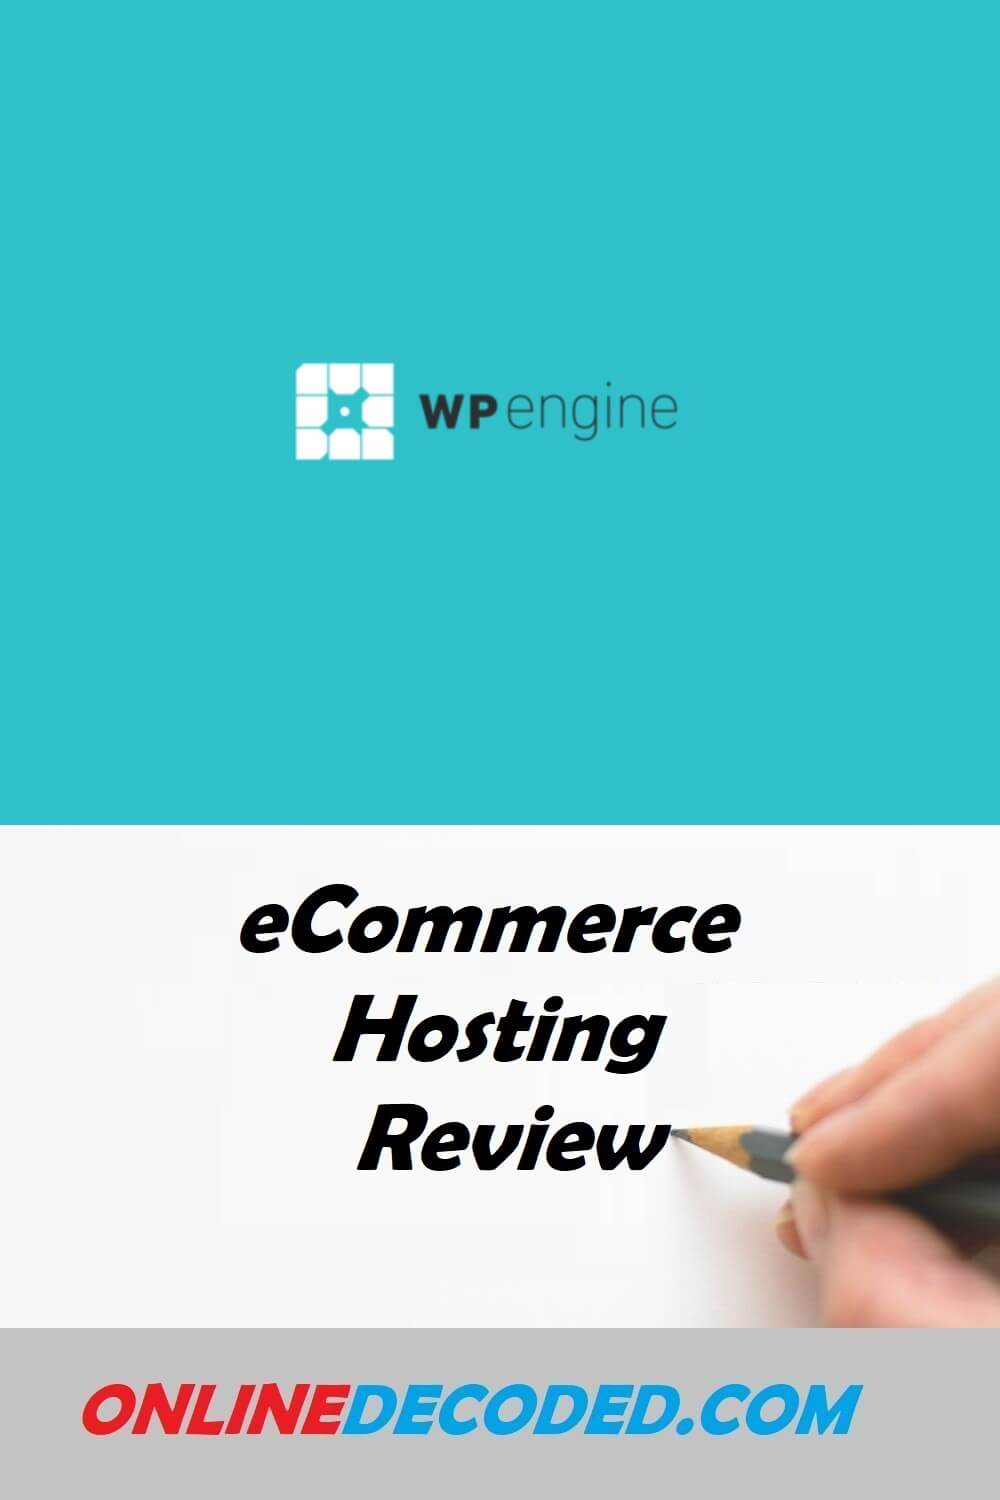 WP Engine eCommerce Hosting: Is it the best in 2021?